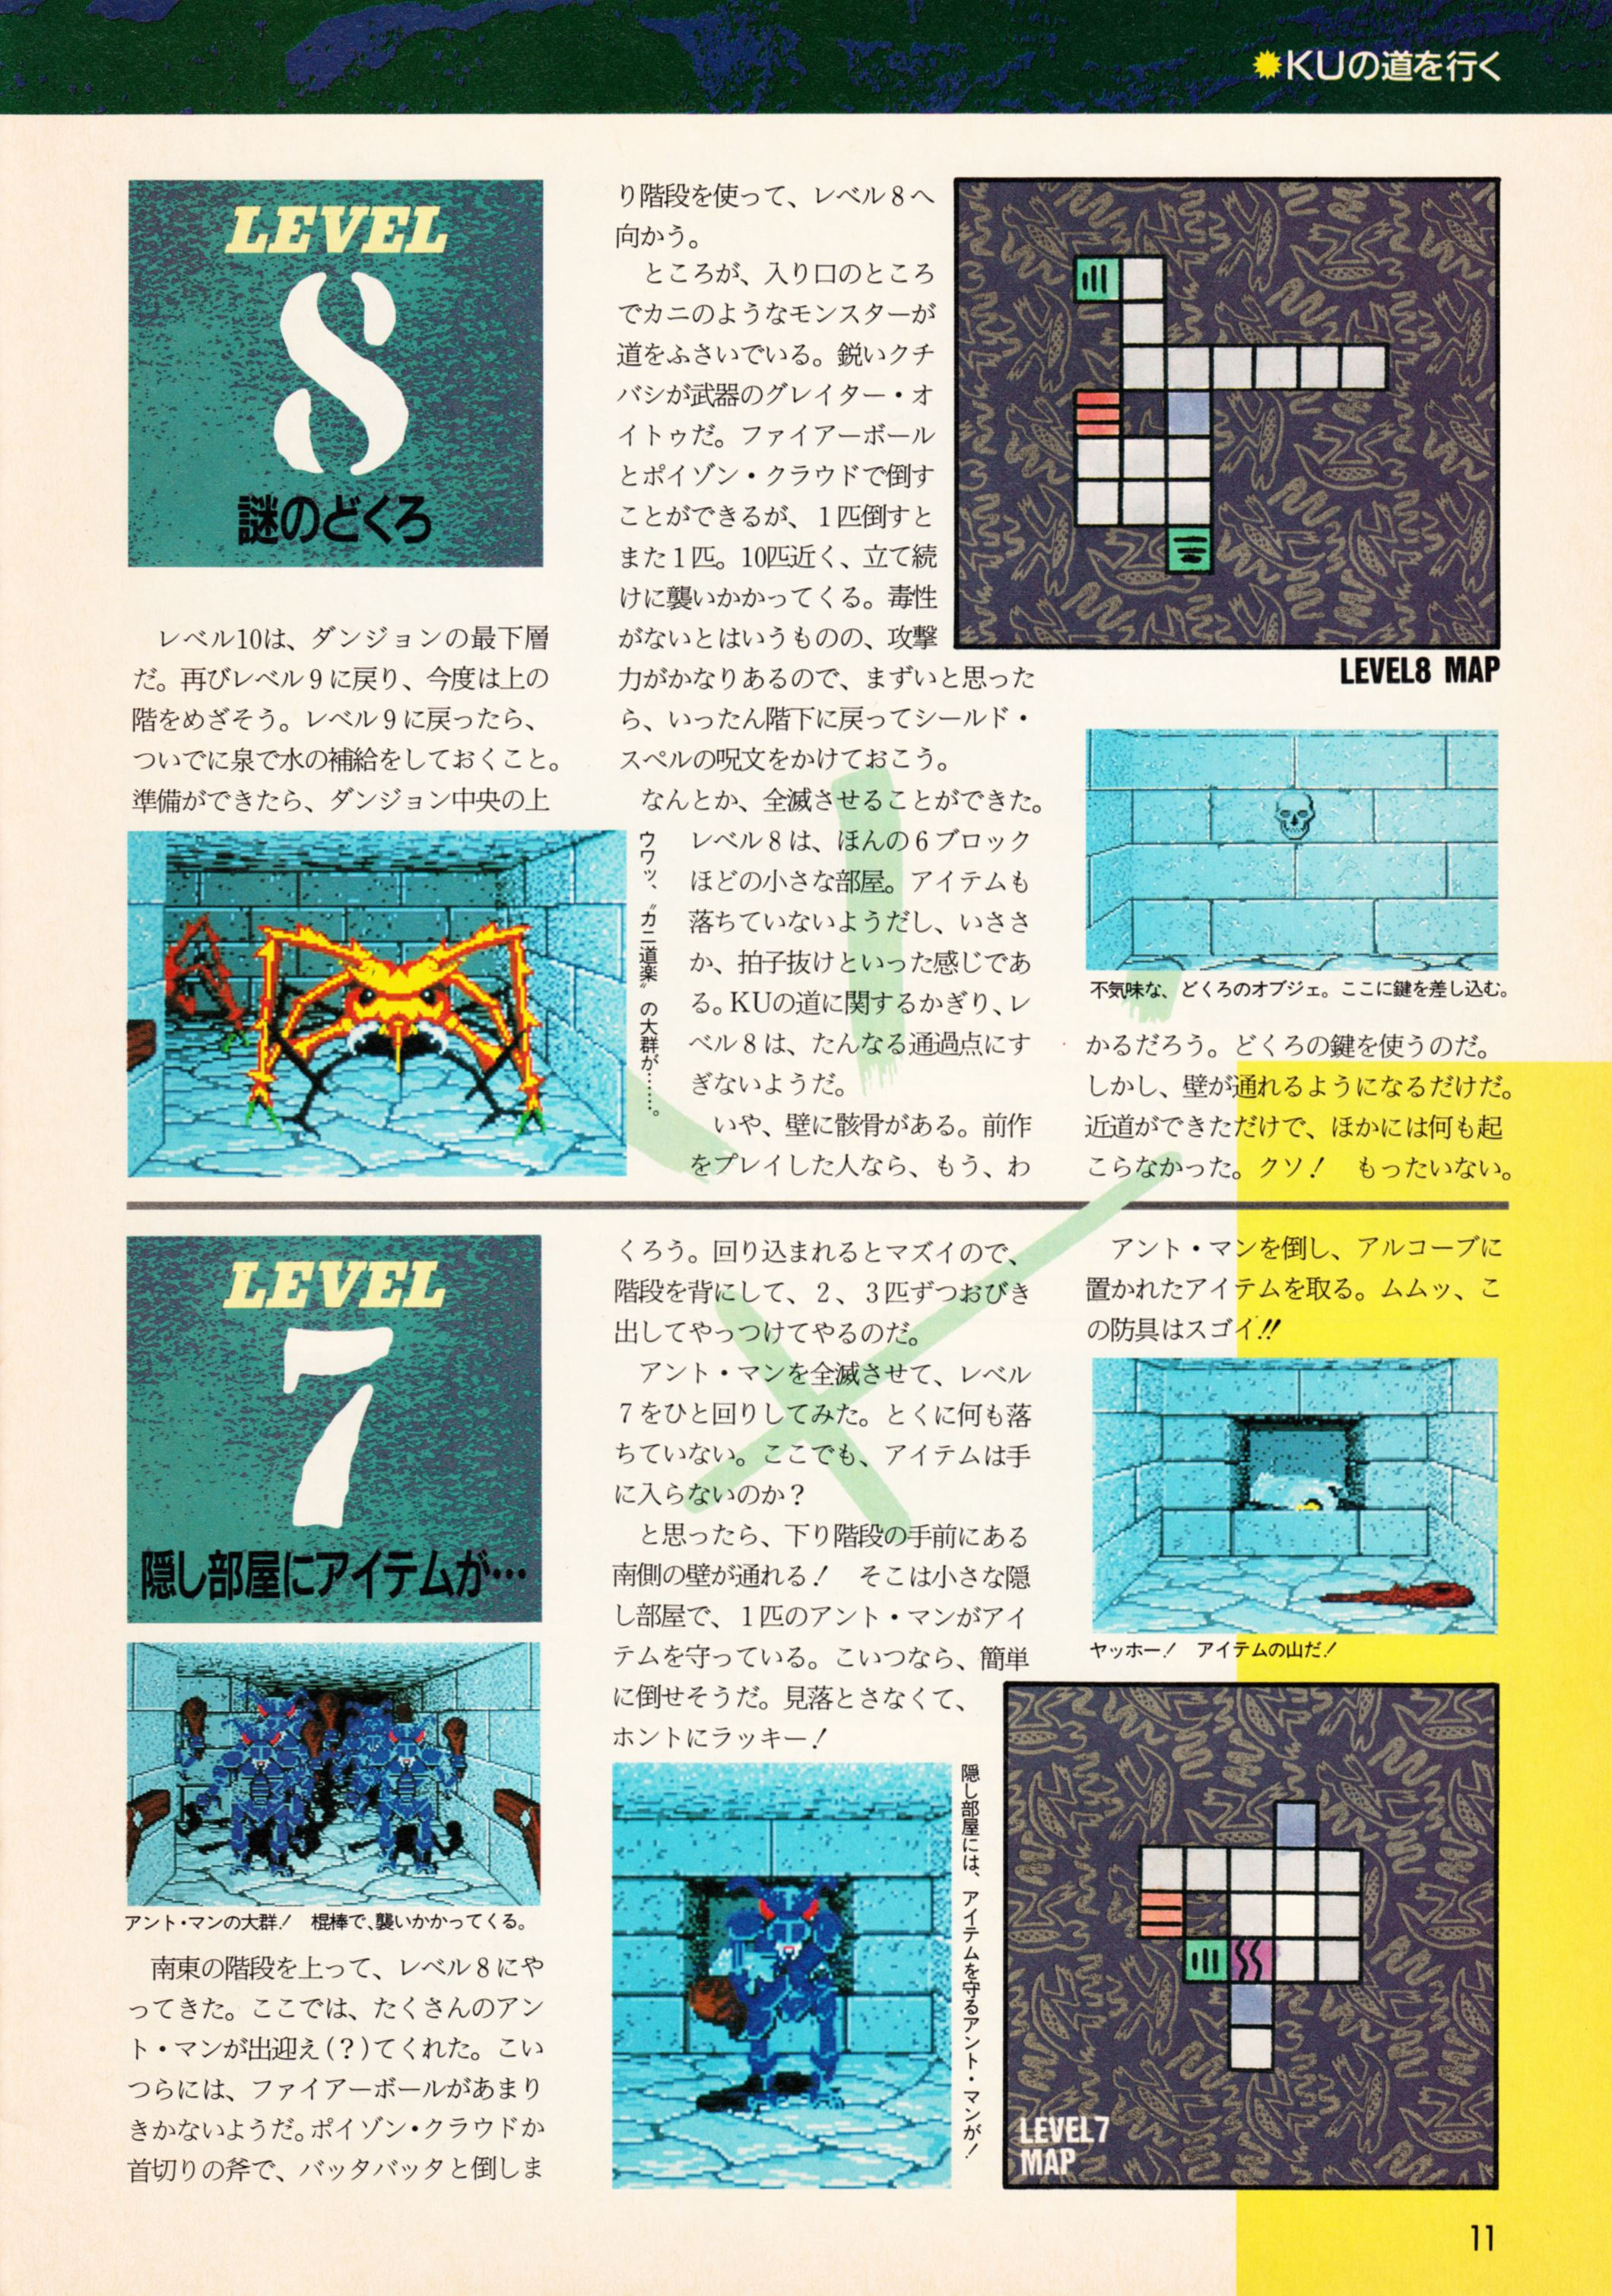 Supplement 1 - Chaos Strikes Back Companion Guide Guide published in Japanese magazine 'Popcom', Vol 9 No 2 01 February 1991, Page 13